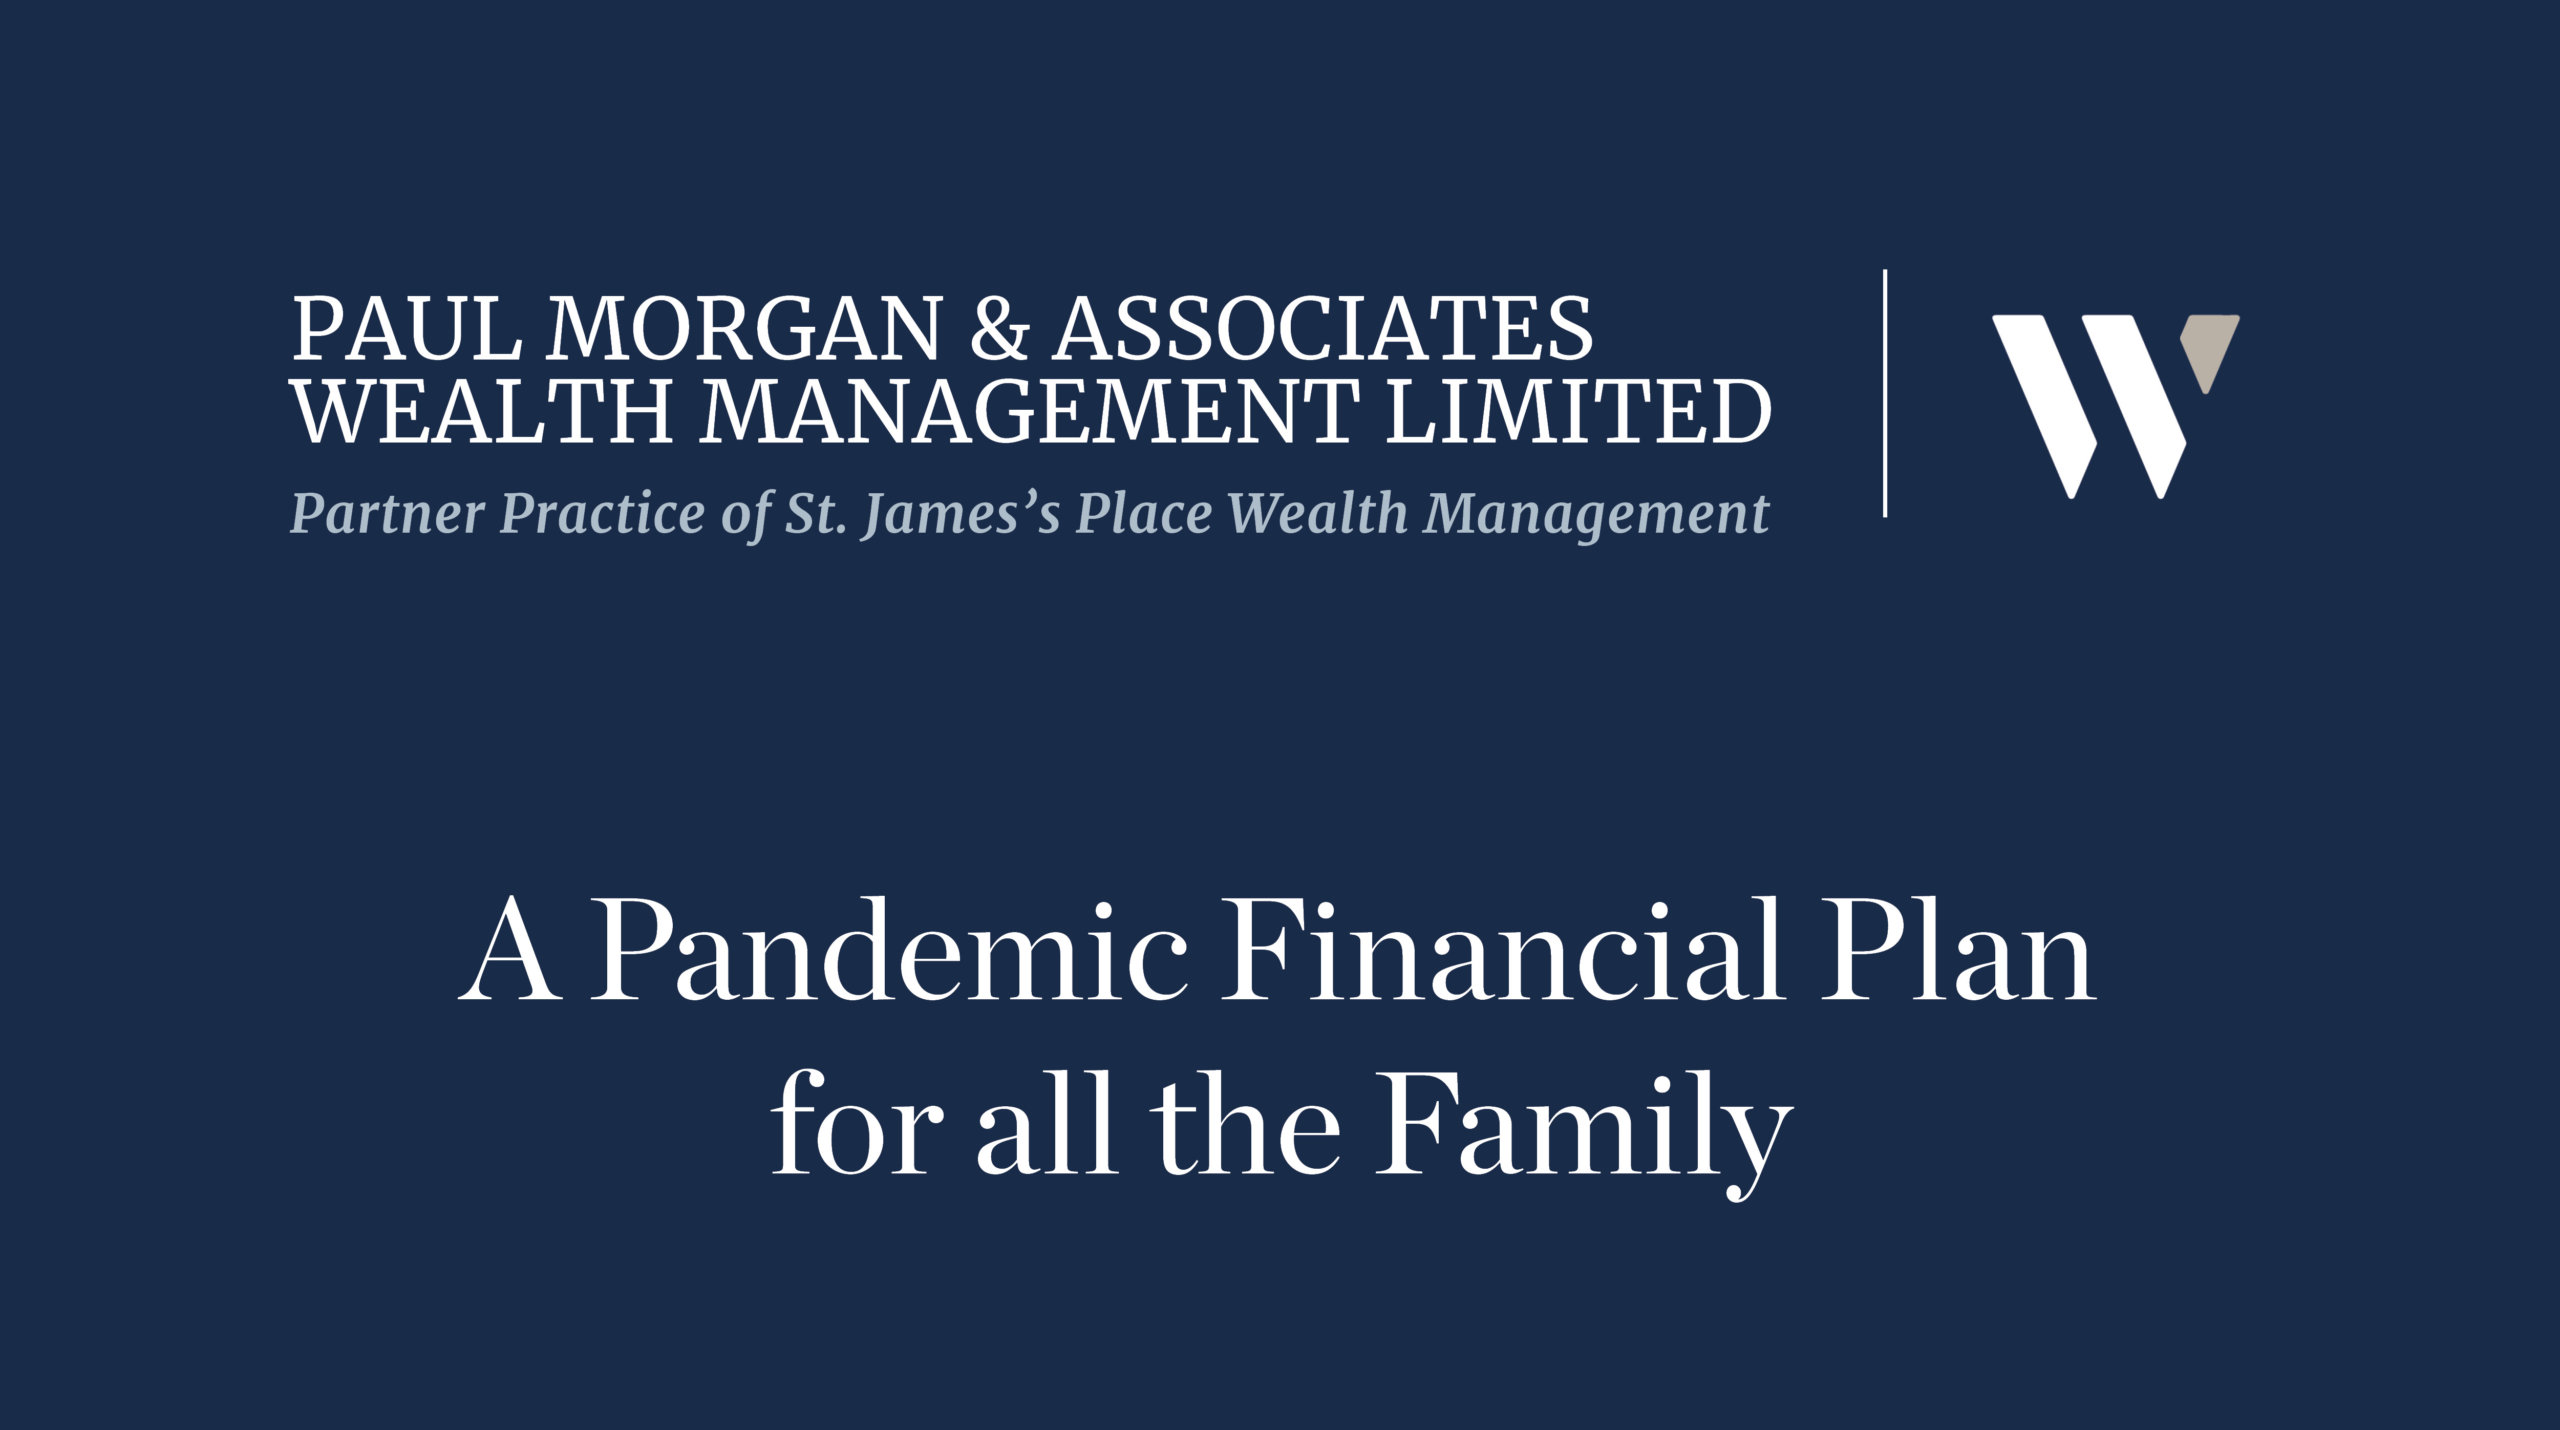 Paul Morgan & Associates - A Pandemic Financial Plan for all the Family